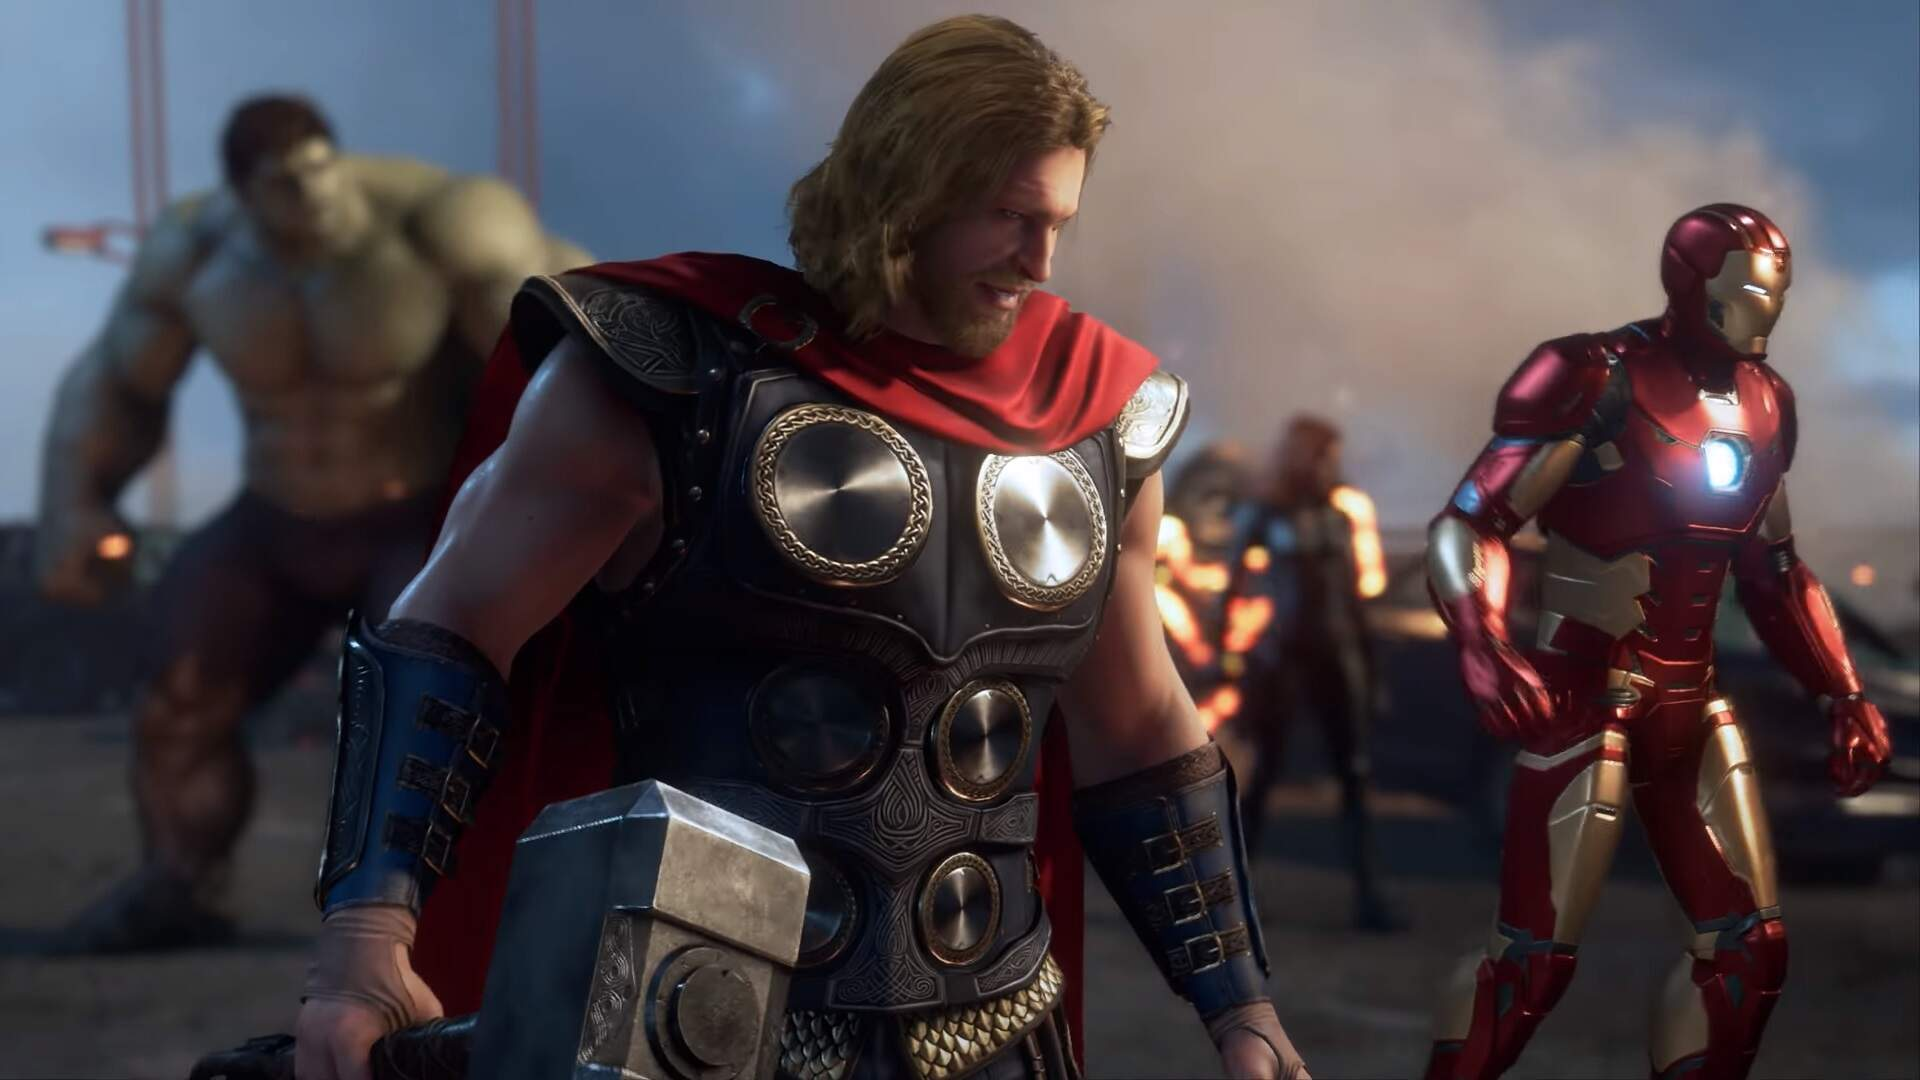 Marvel's Avengers Gameplay Will Debut at San Diego Comic-Con, But You Probably Won't be Able to See It